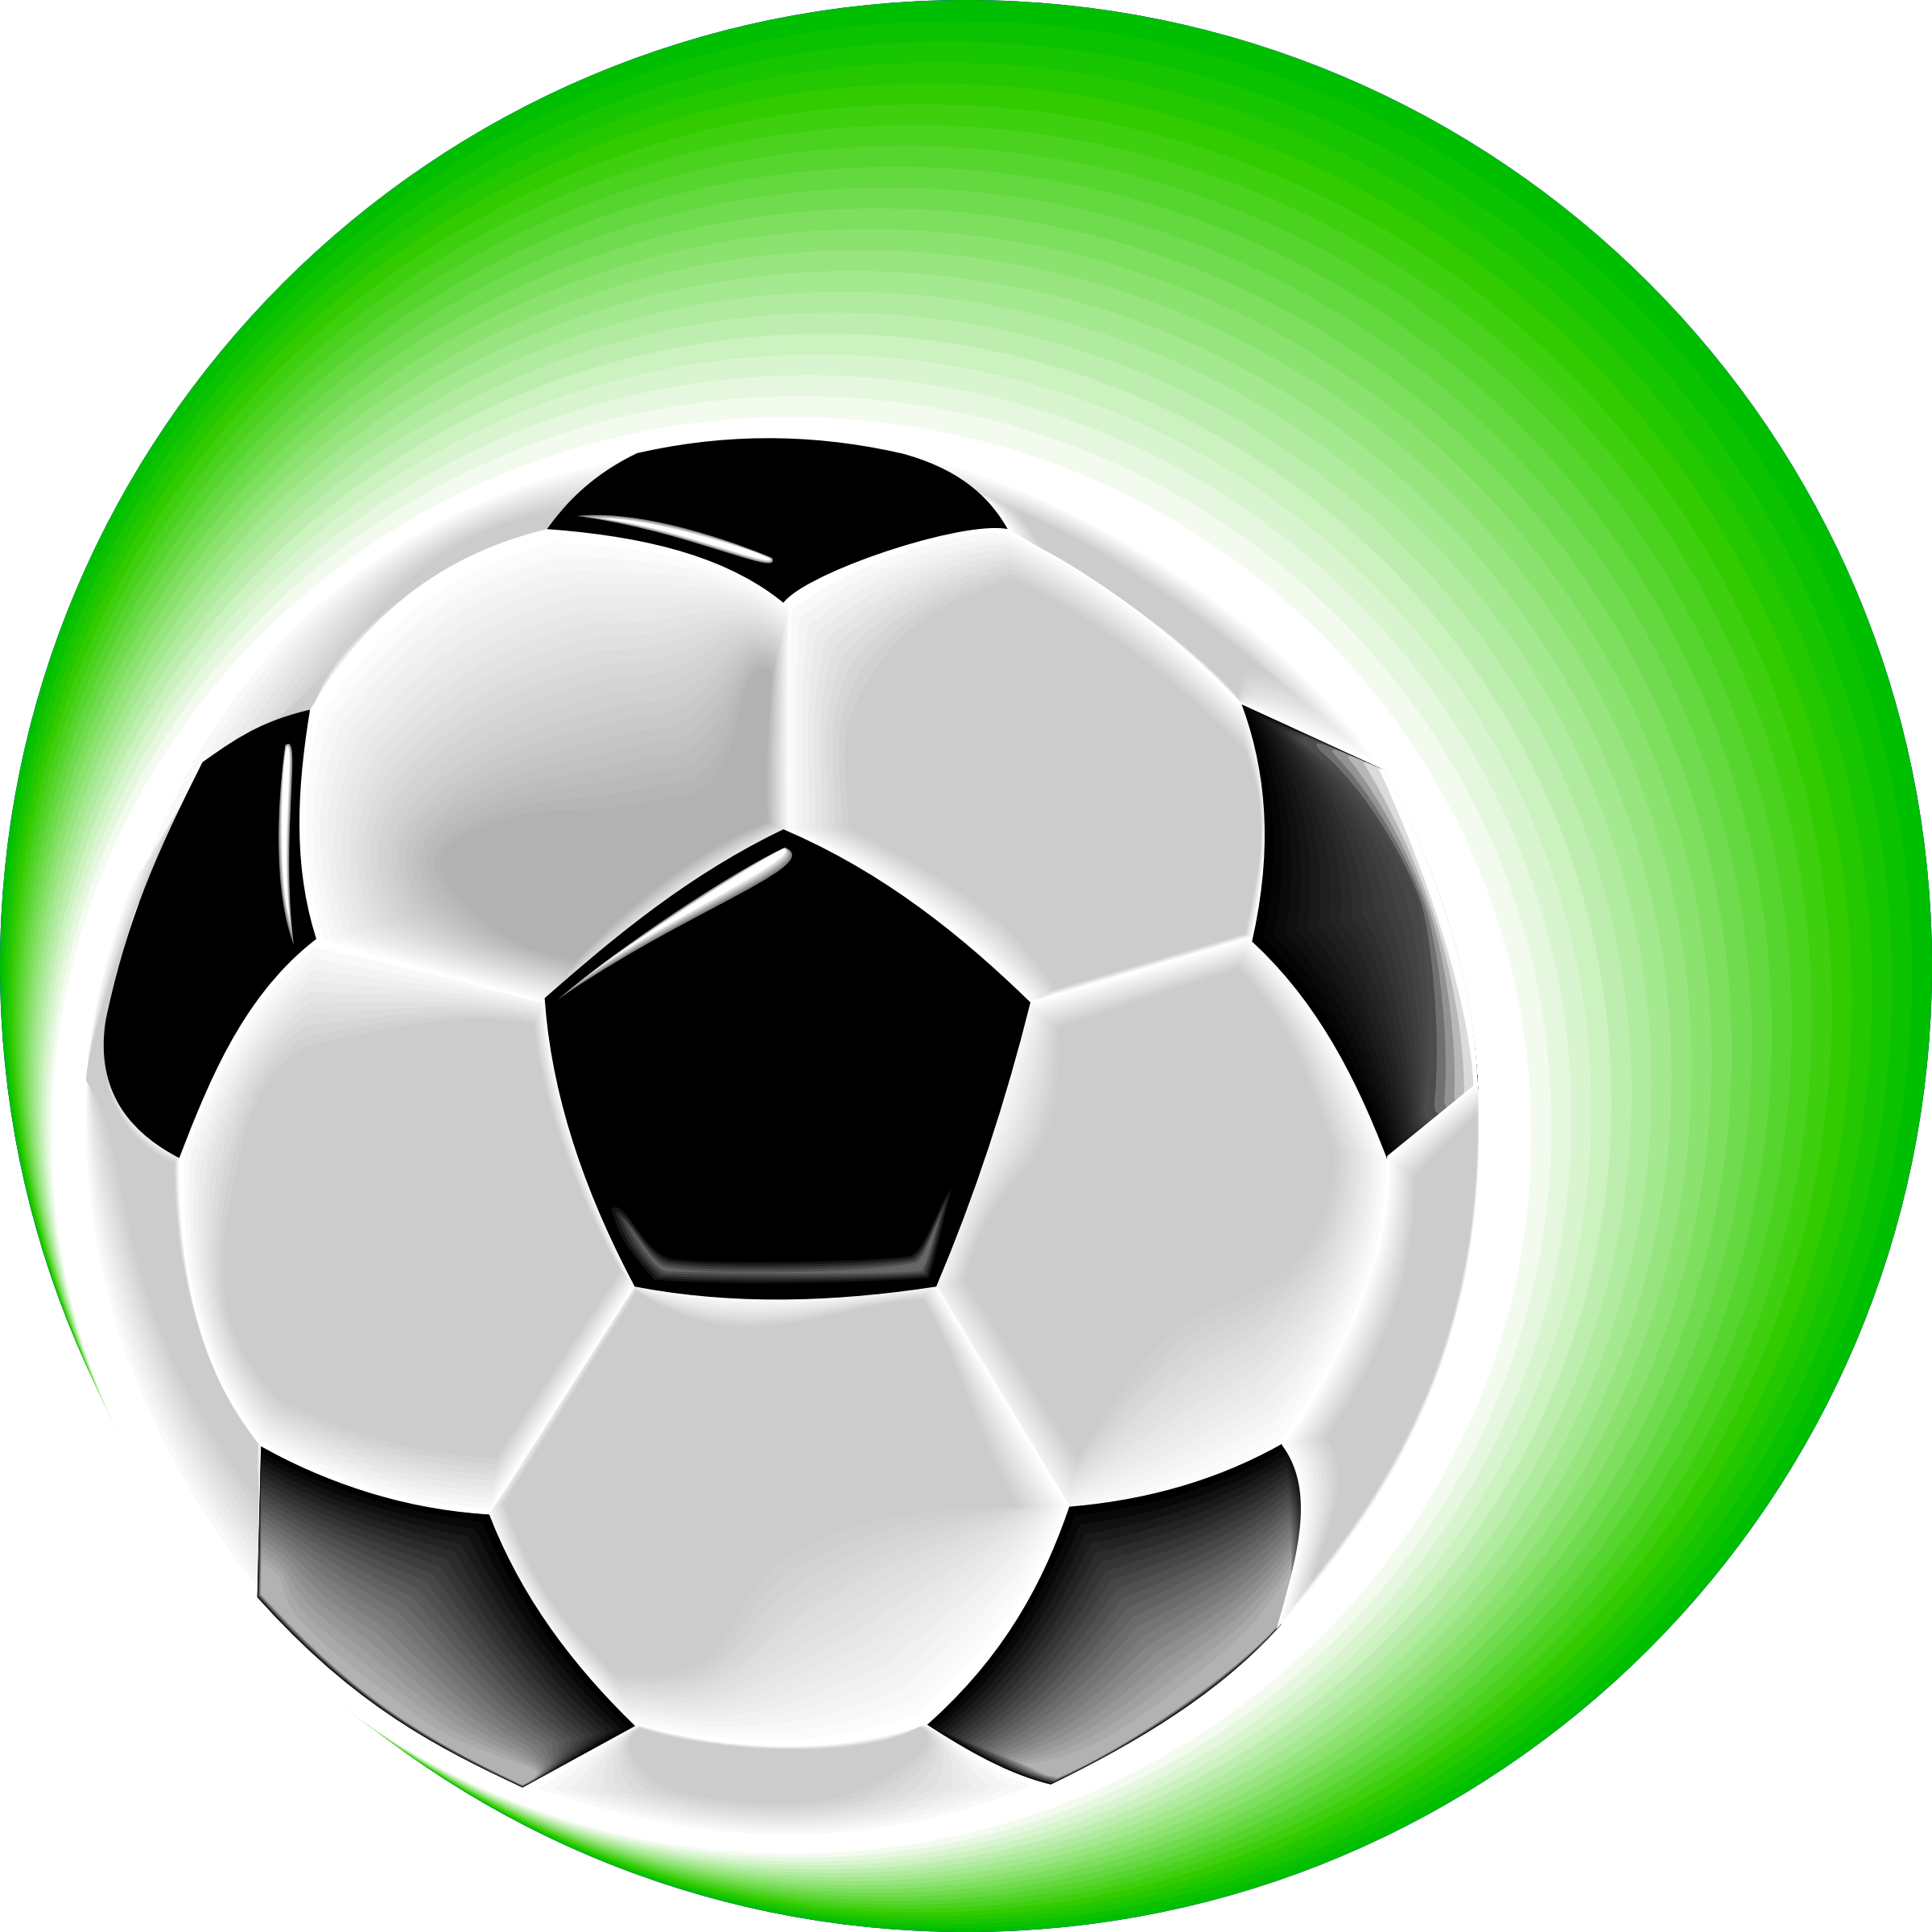 Kids soccer ball clipart image black and white library Clipart - soccerball image black and white library